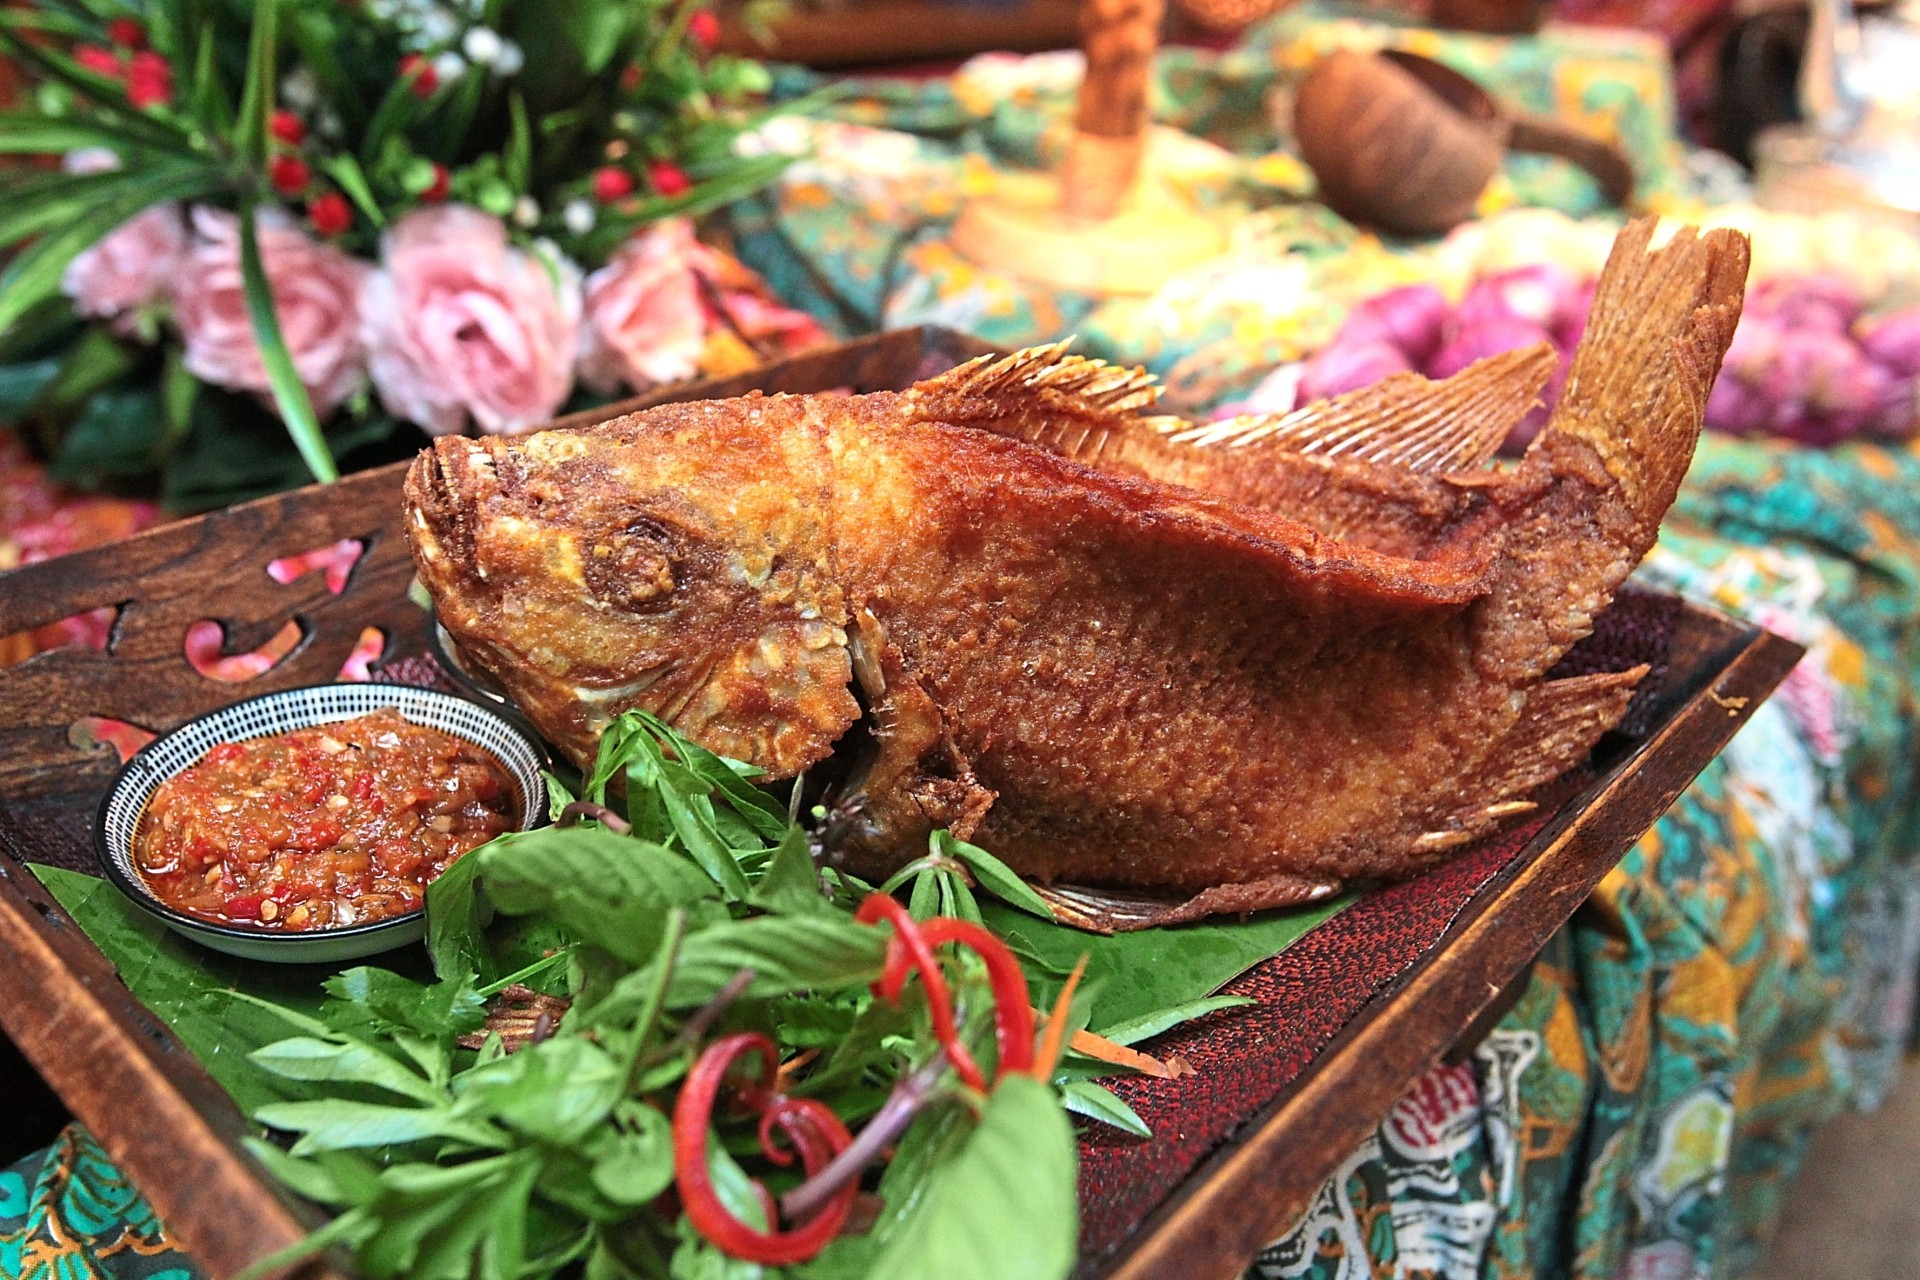 The aptly named ikan wayang features a whole, perfectly fried fish, served with two different kinds of homemade sambal.